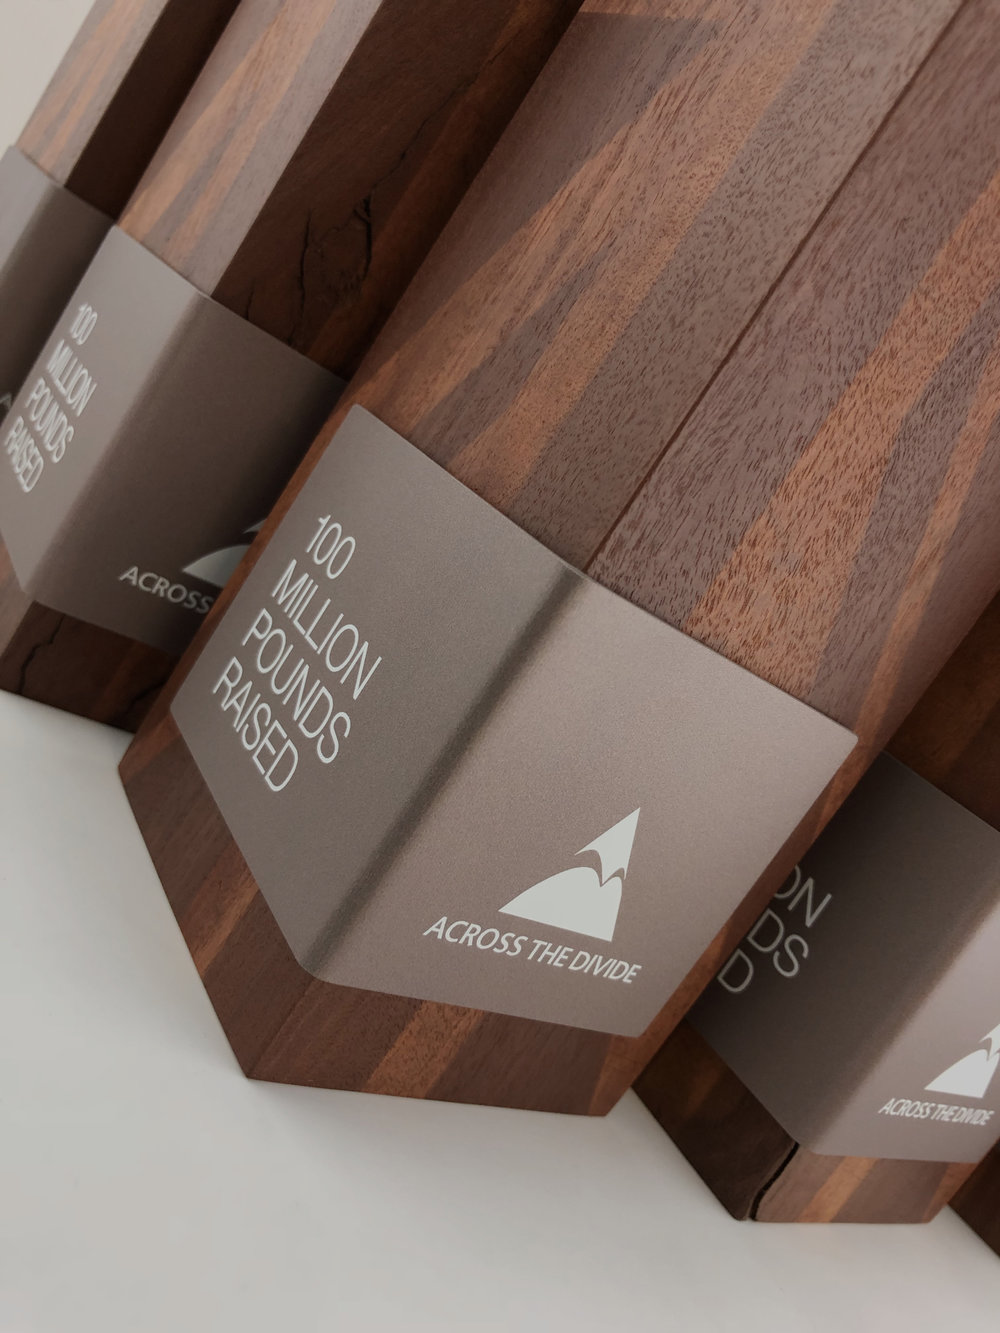 across-the-divide-awards-timber-trophy-01.jpg